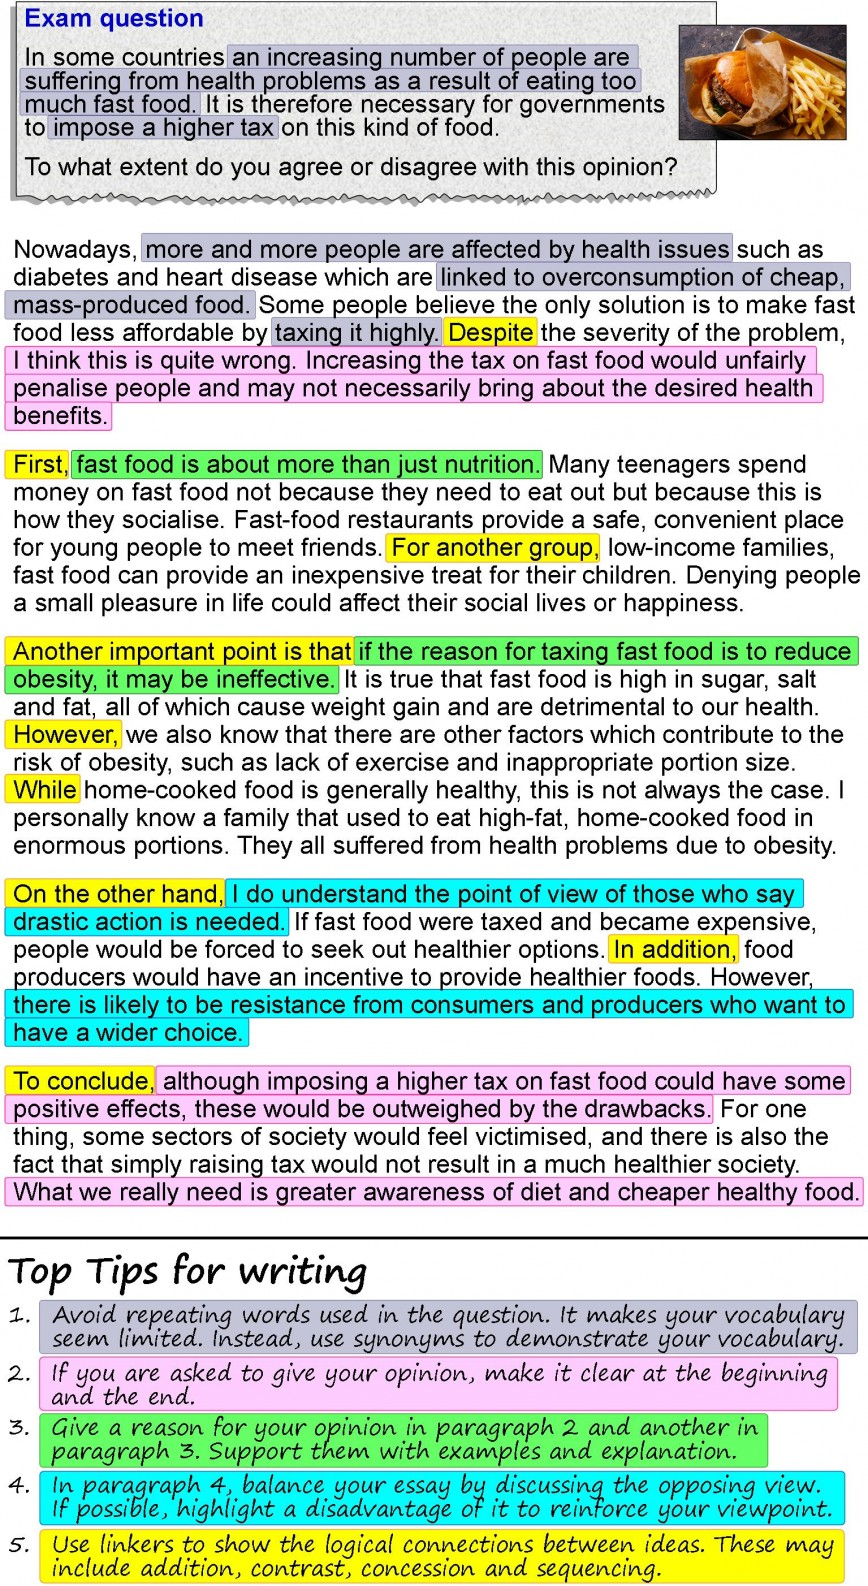 001 Opinion Essay About Fast Food Example An 4 Unbelievable British Council Short 868